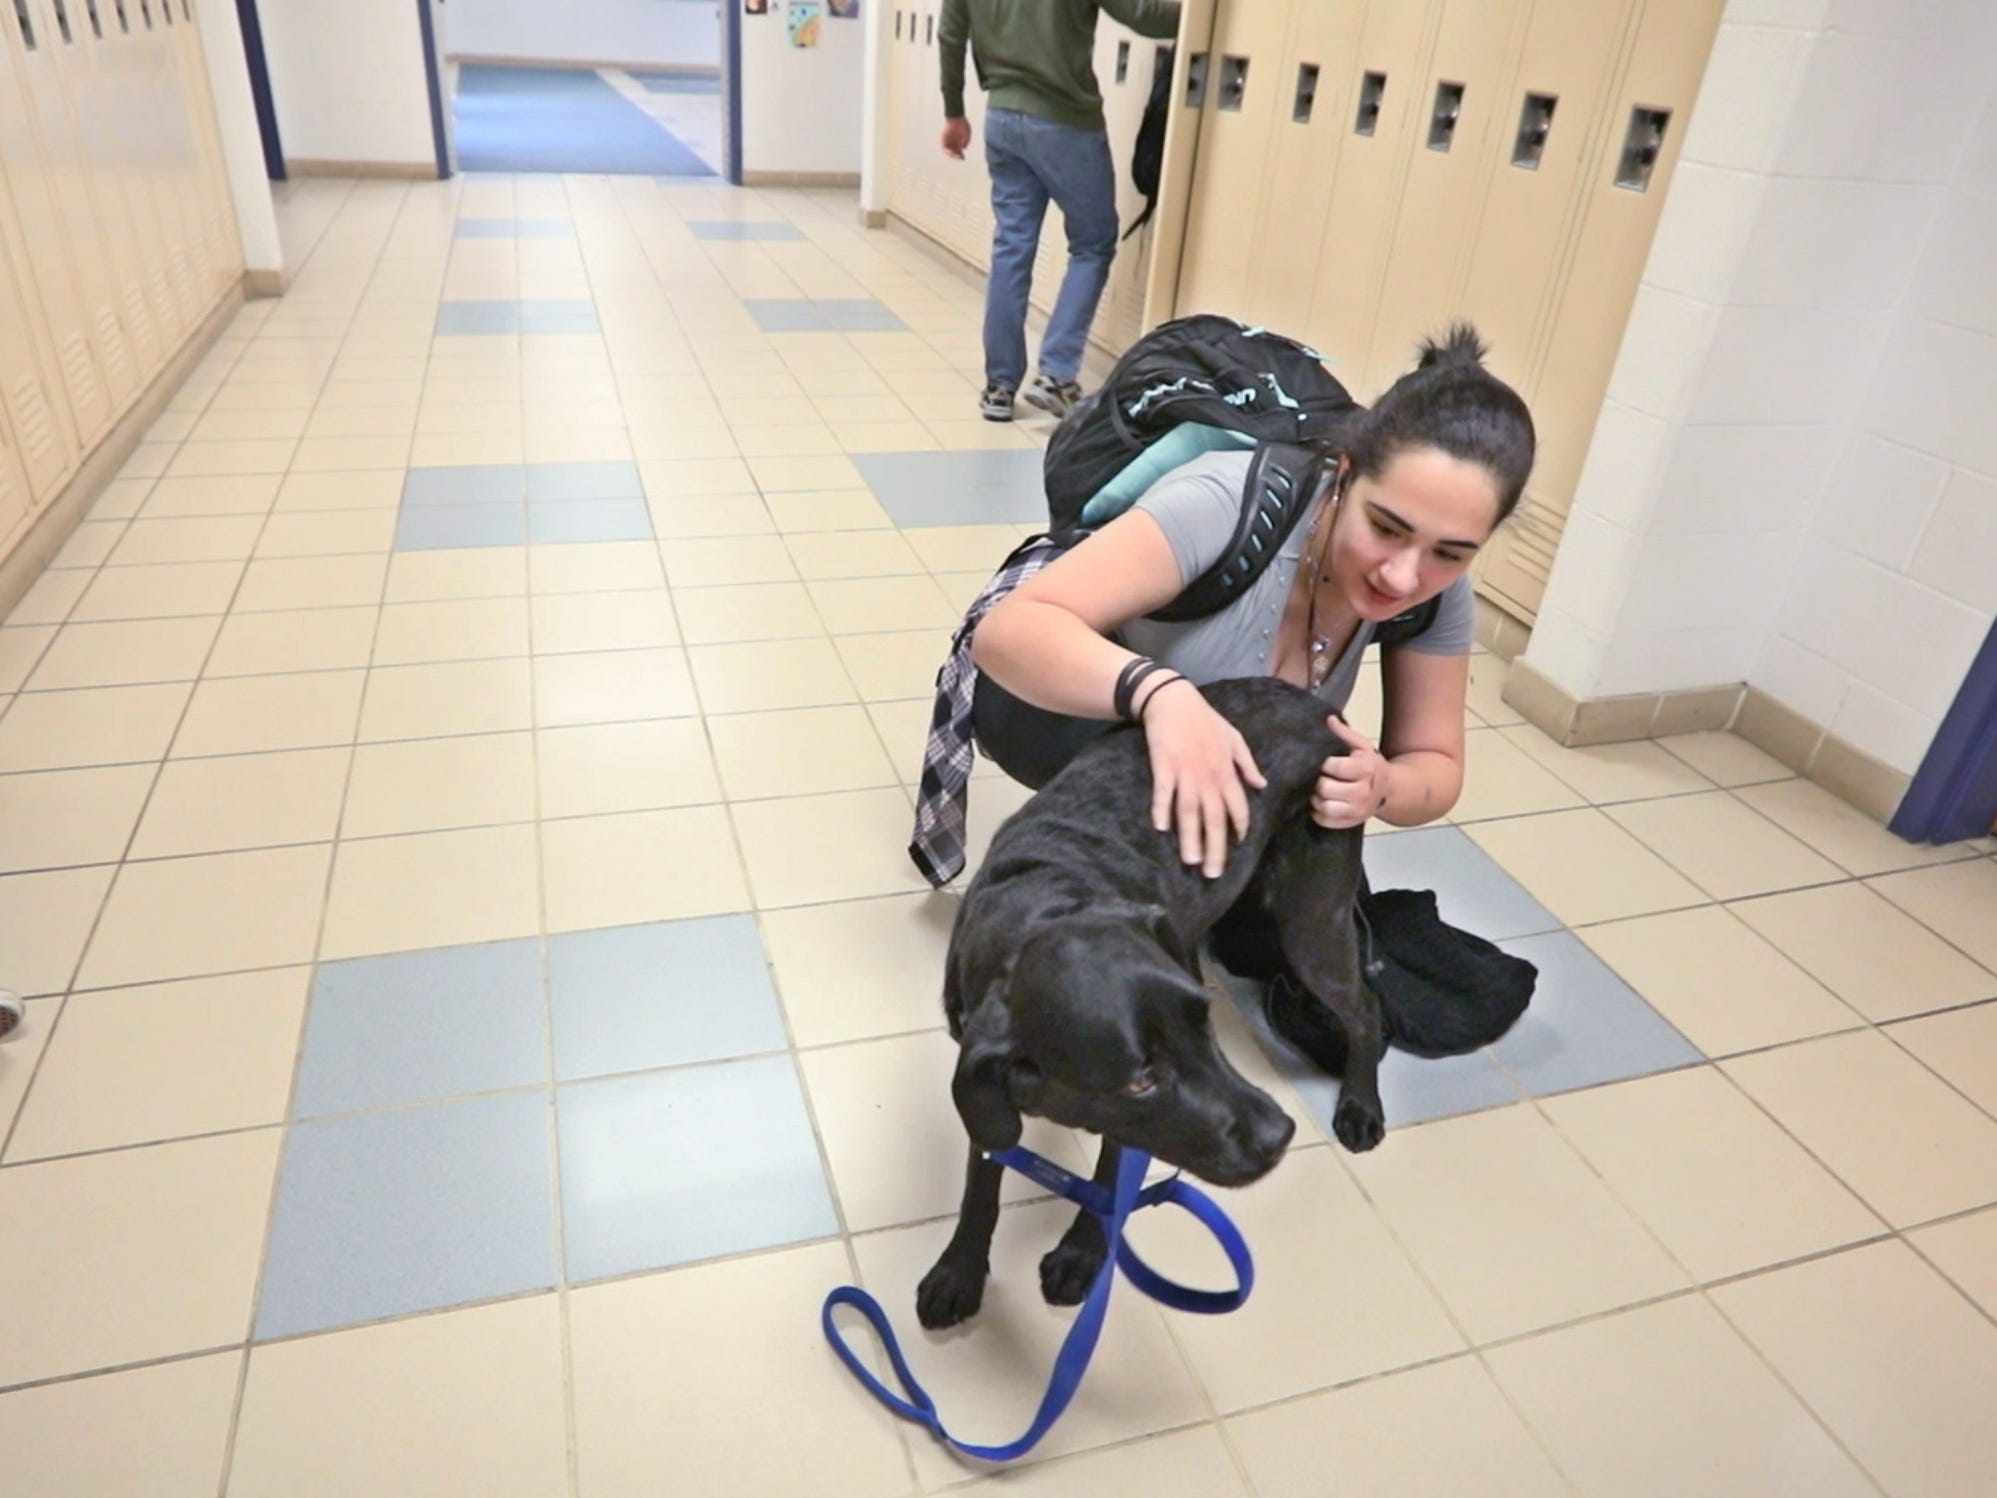 Jayanna McAfee, a junior at Spencerport High, visits with Ruby, a 4-year-old black Lab who is the new therapy dog at Spencerport High School, on Tuesday, Jan. 29, 2019.